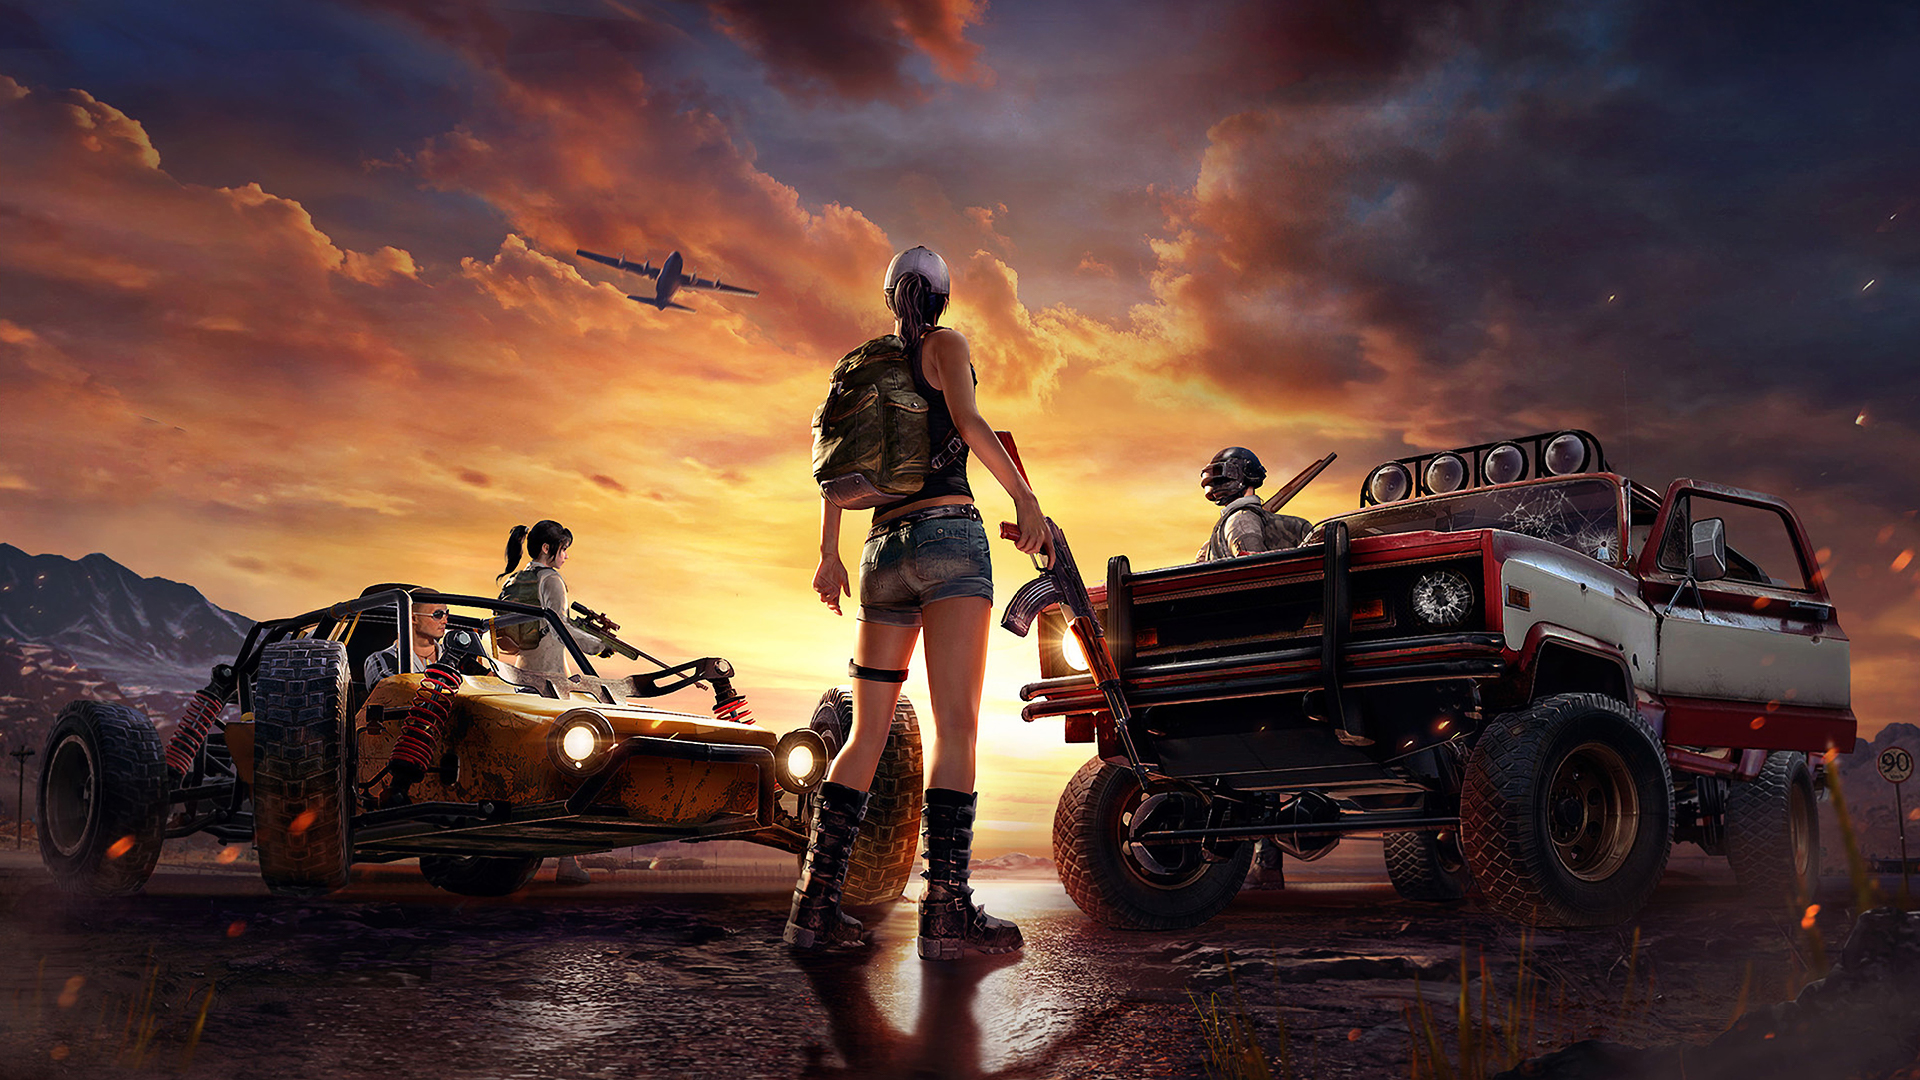 PUBG was made available on Xbox Game Pass